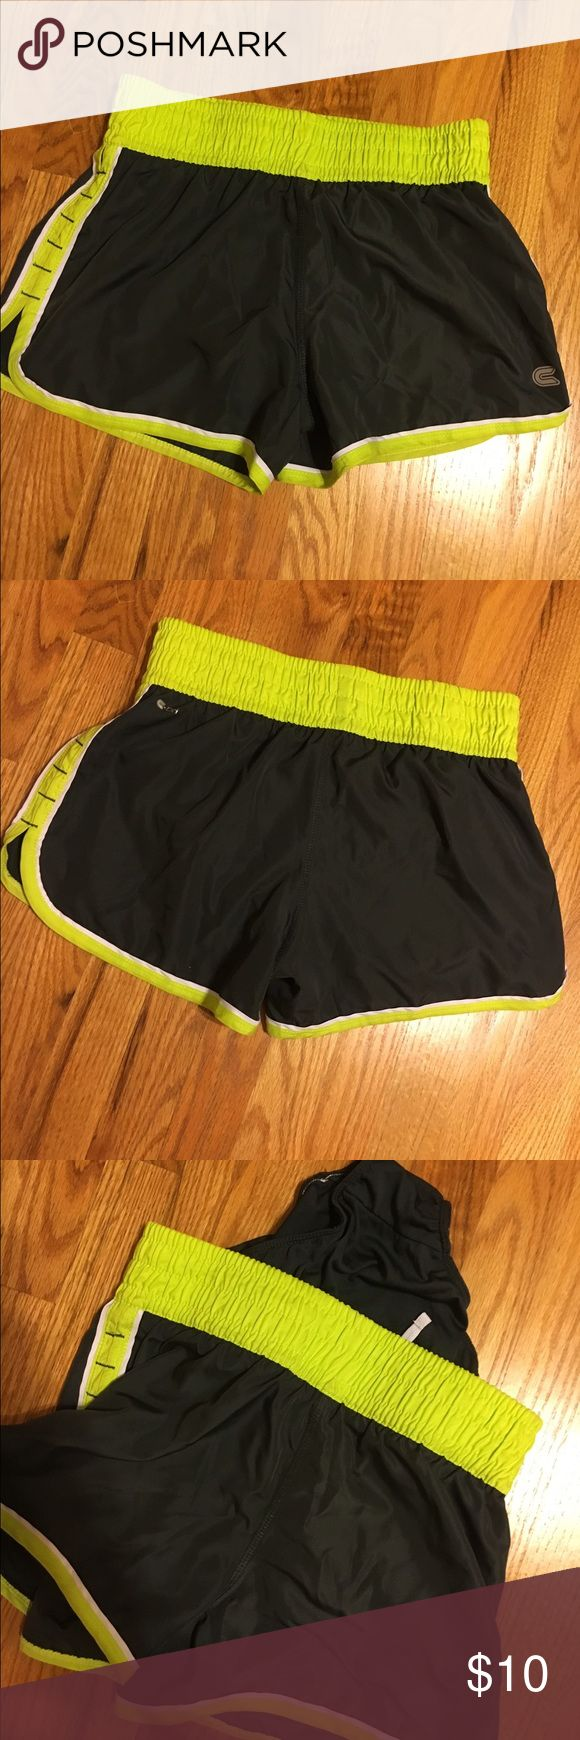 Dark gray athletic shorts Size medium. Dark gray with green trim. Attached undergarment for running etc. Shorts